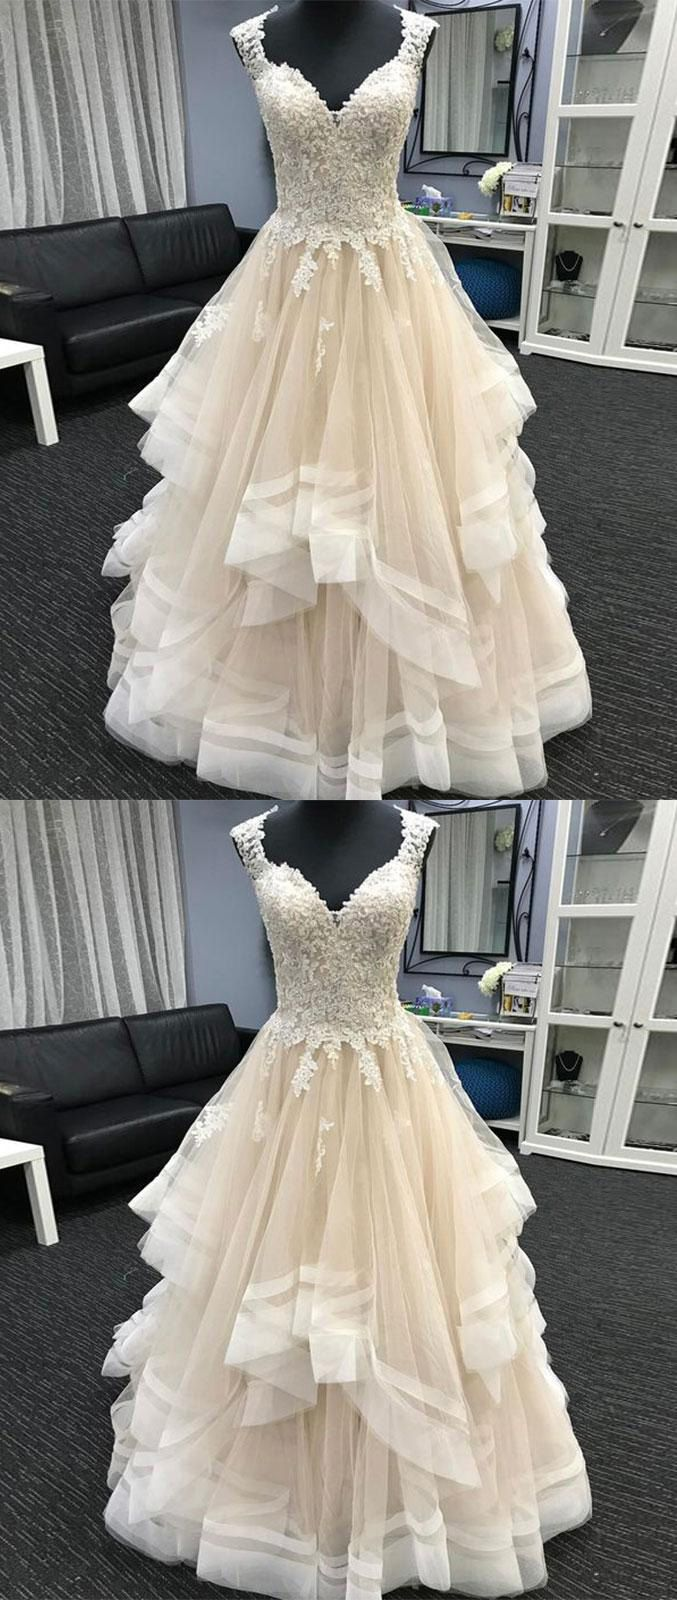 Long Champagne Tulle Prom Dress #promdresses#promdresses2018#champagnepromdresses#sweetheart#eveningdresses#lacepromdresses